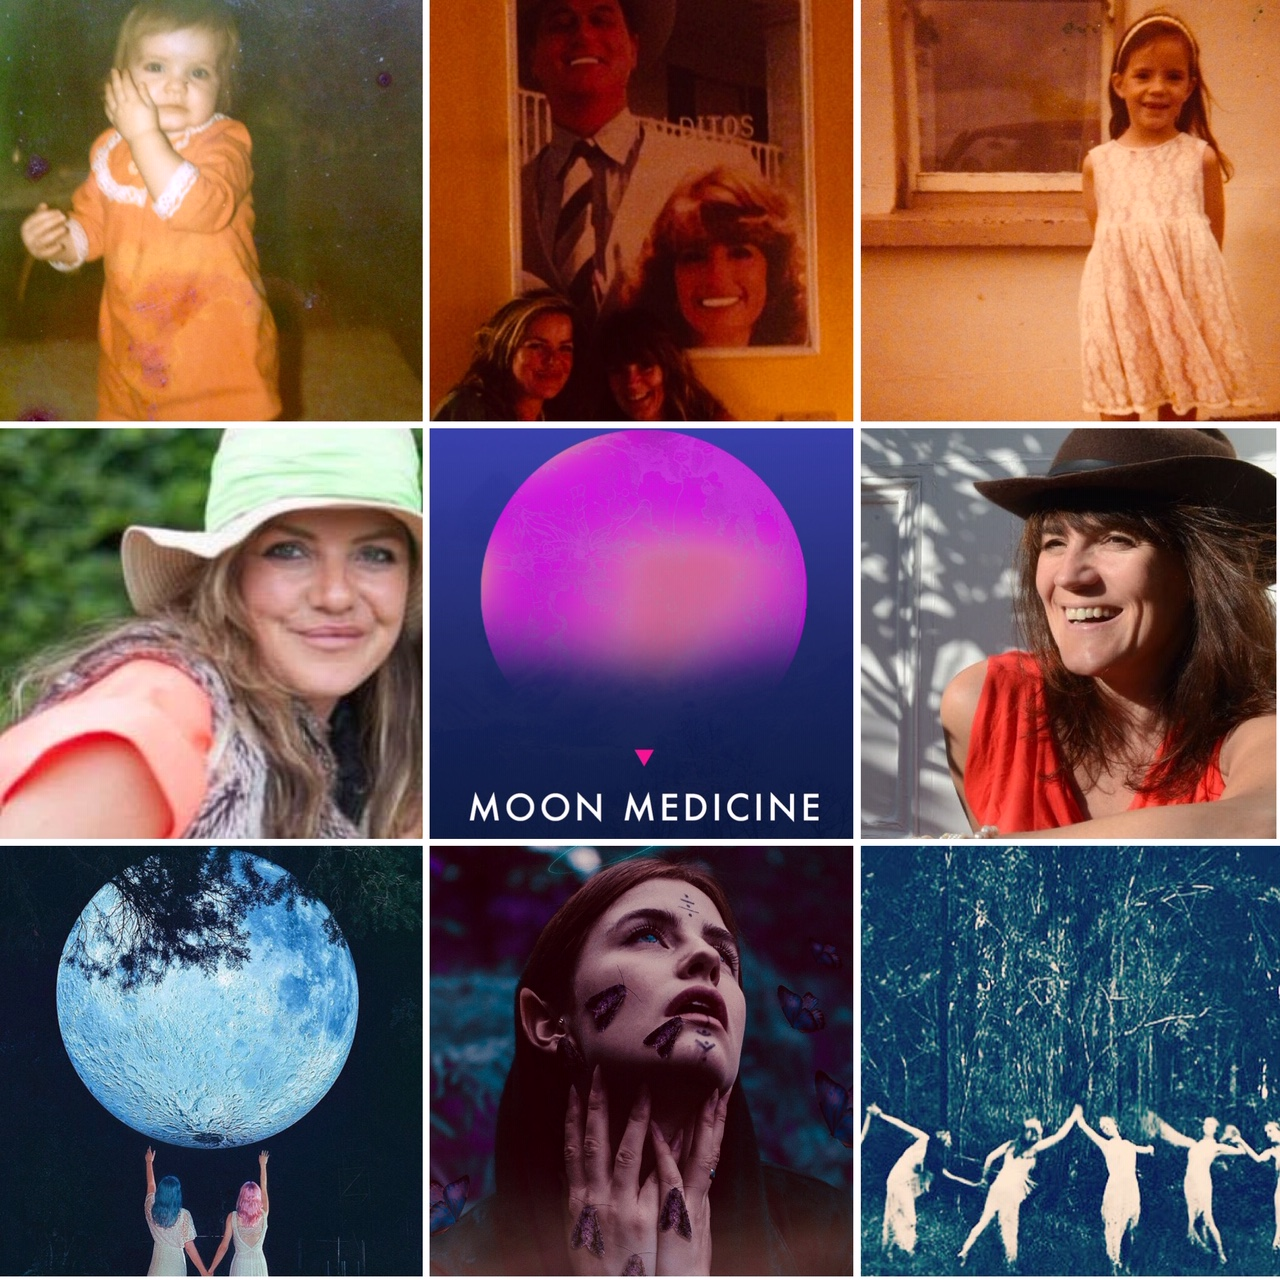 moon medicine - a monthly mystery gathering for wild women